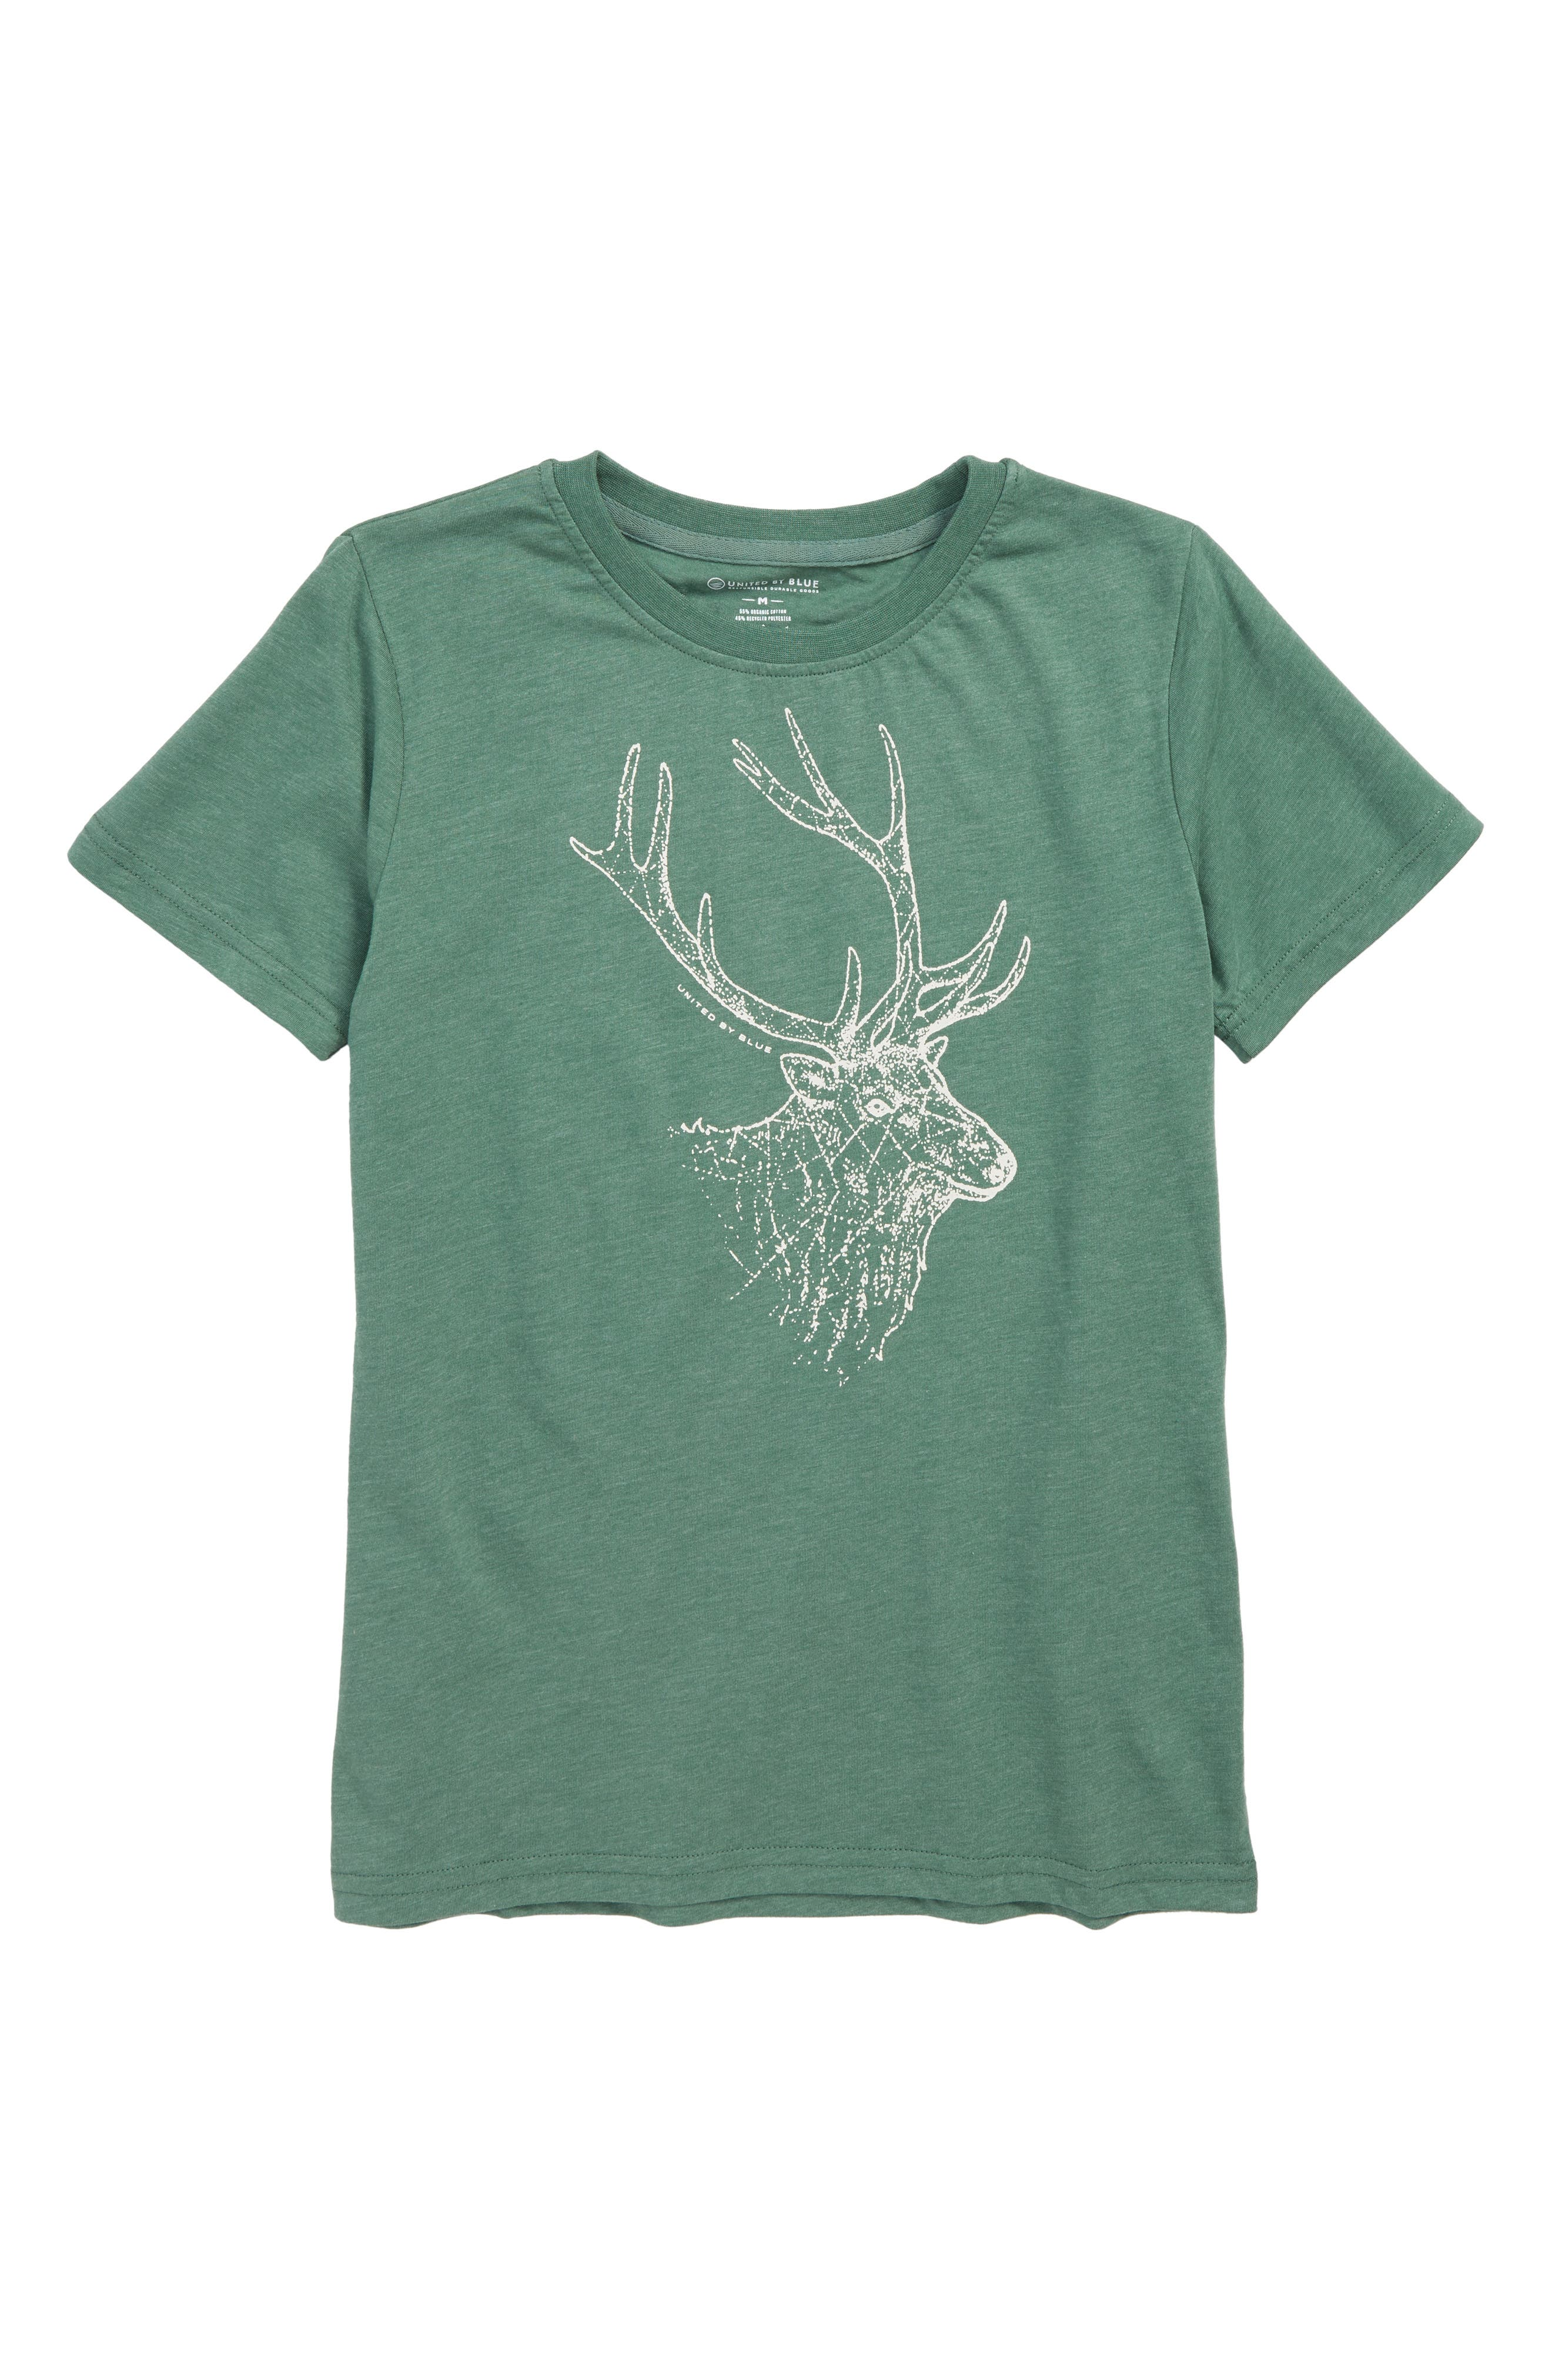 Stag T-Shirt,                         Main,                         color, DARK GREEN